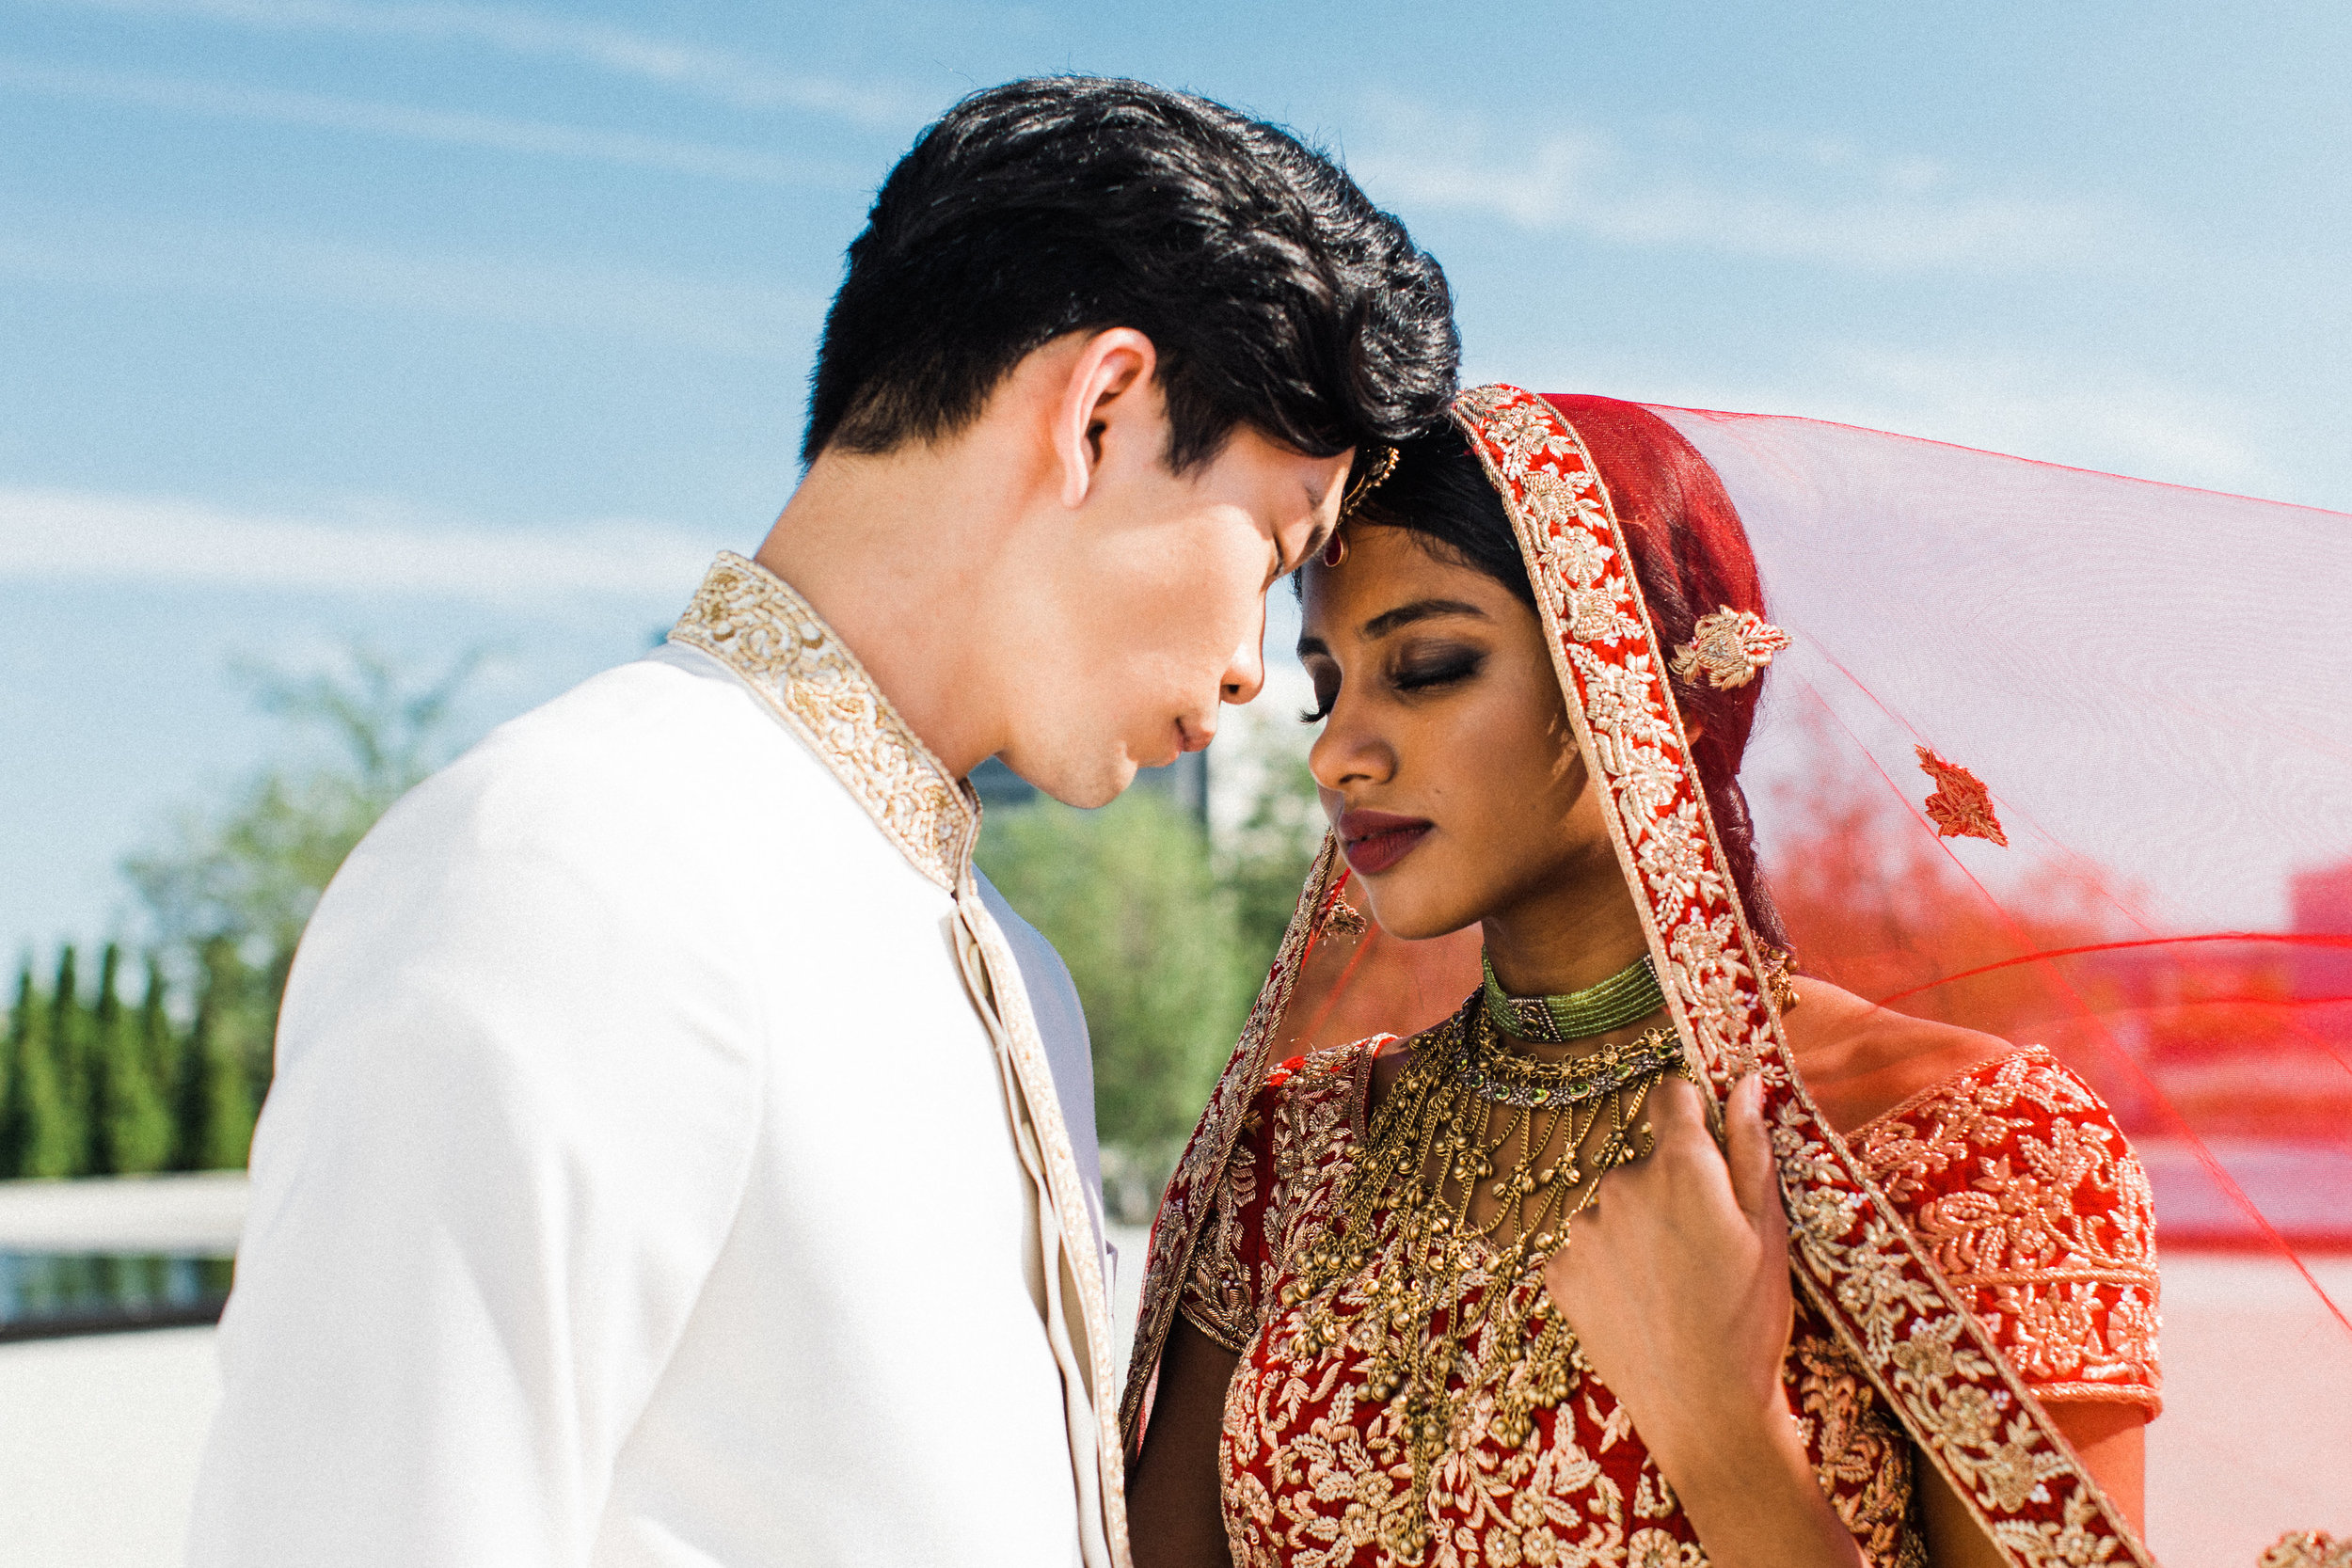 August In Bloom - Couple - Scarlet Sweetheart (Lavish Dulhan)